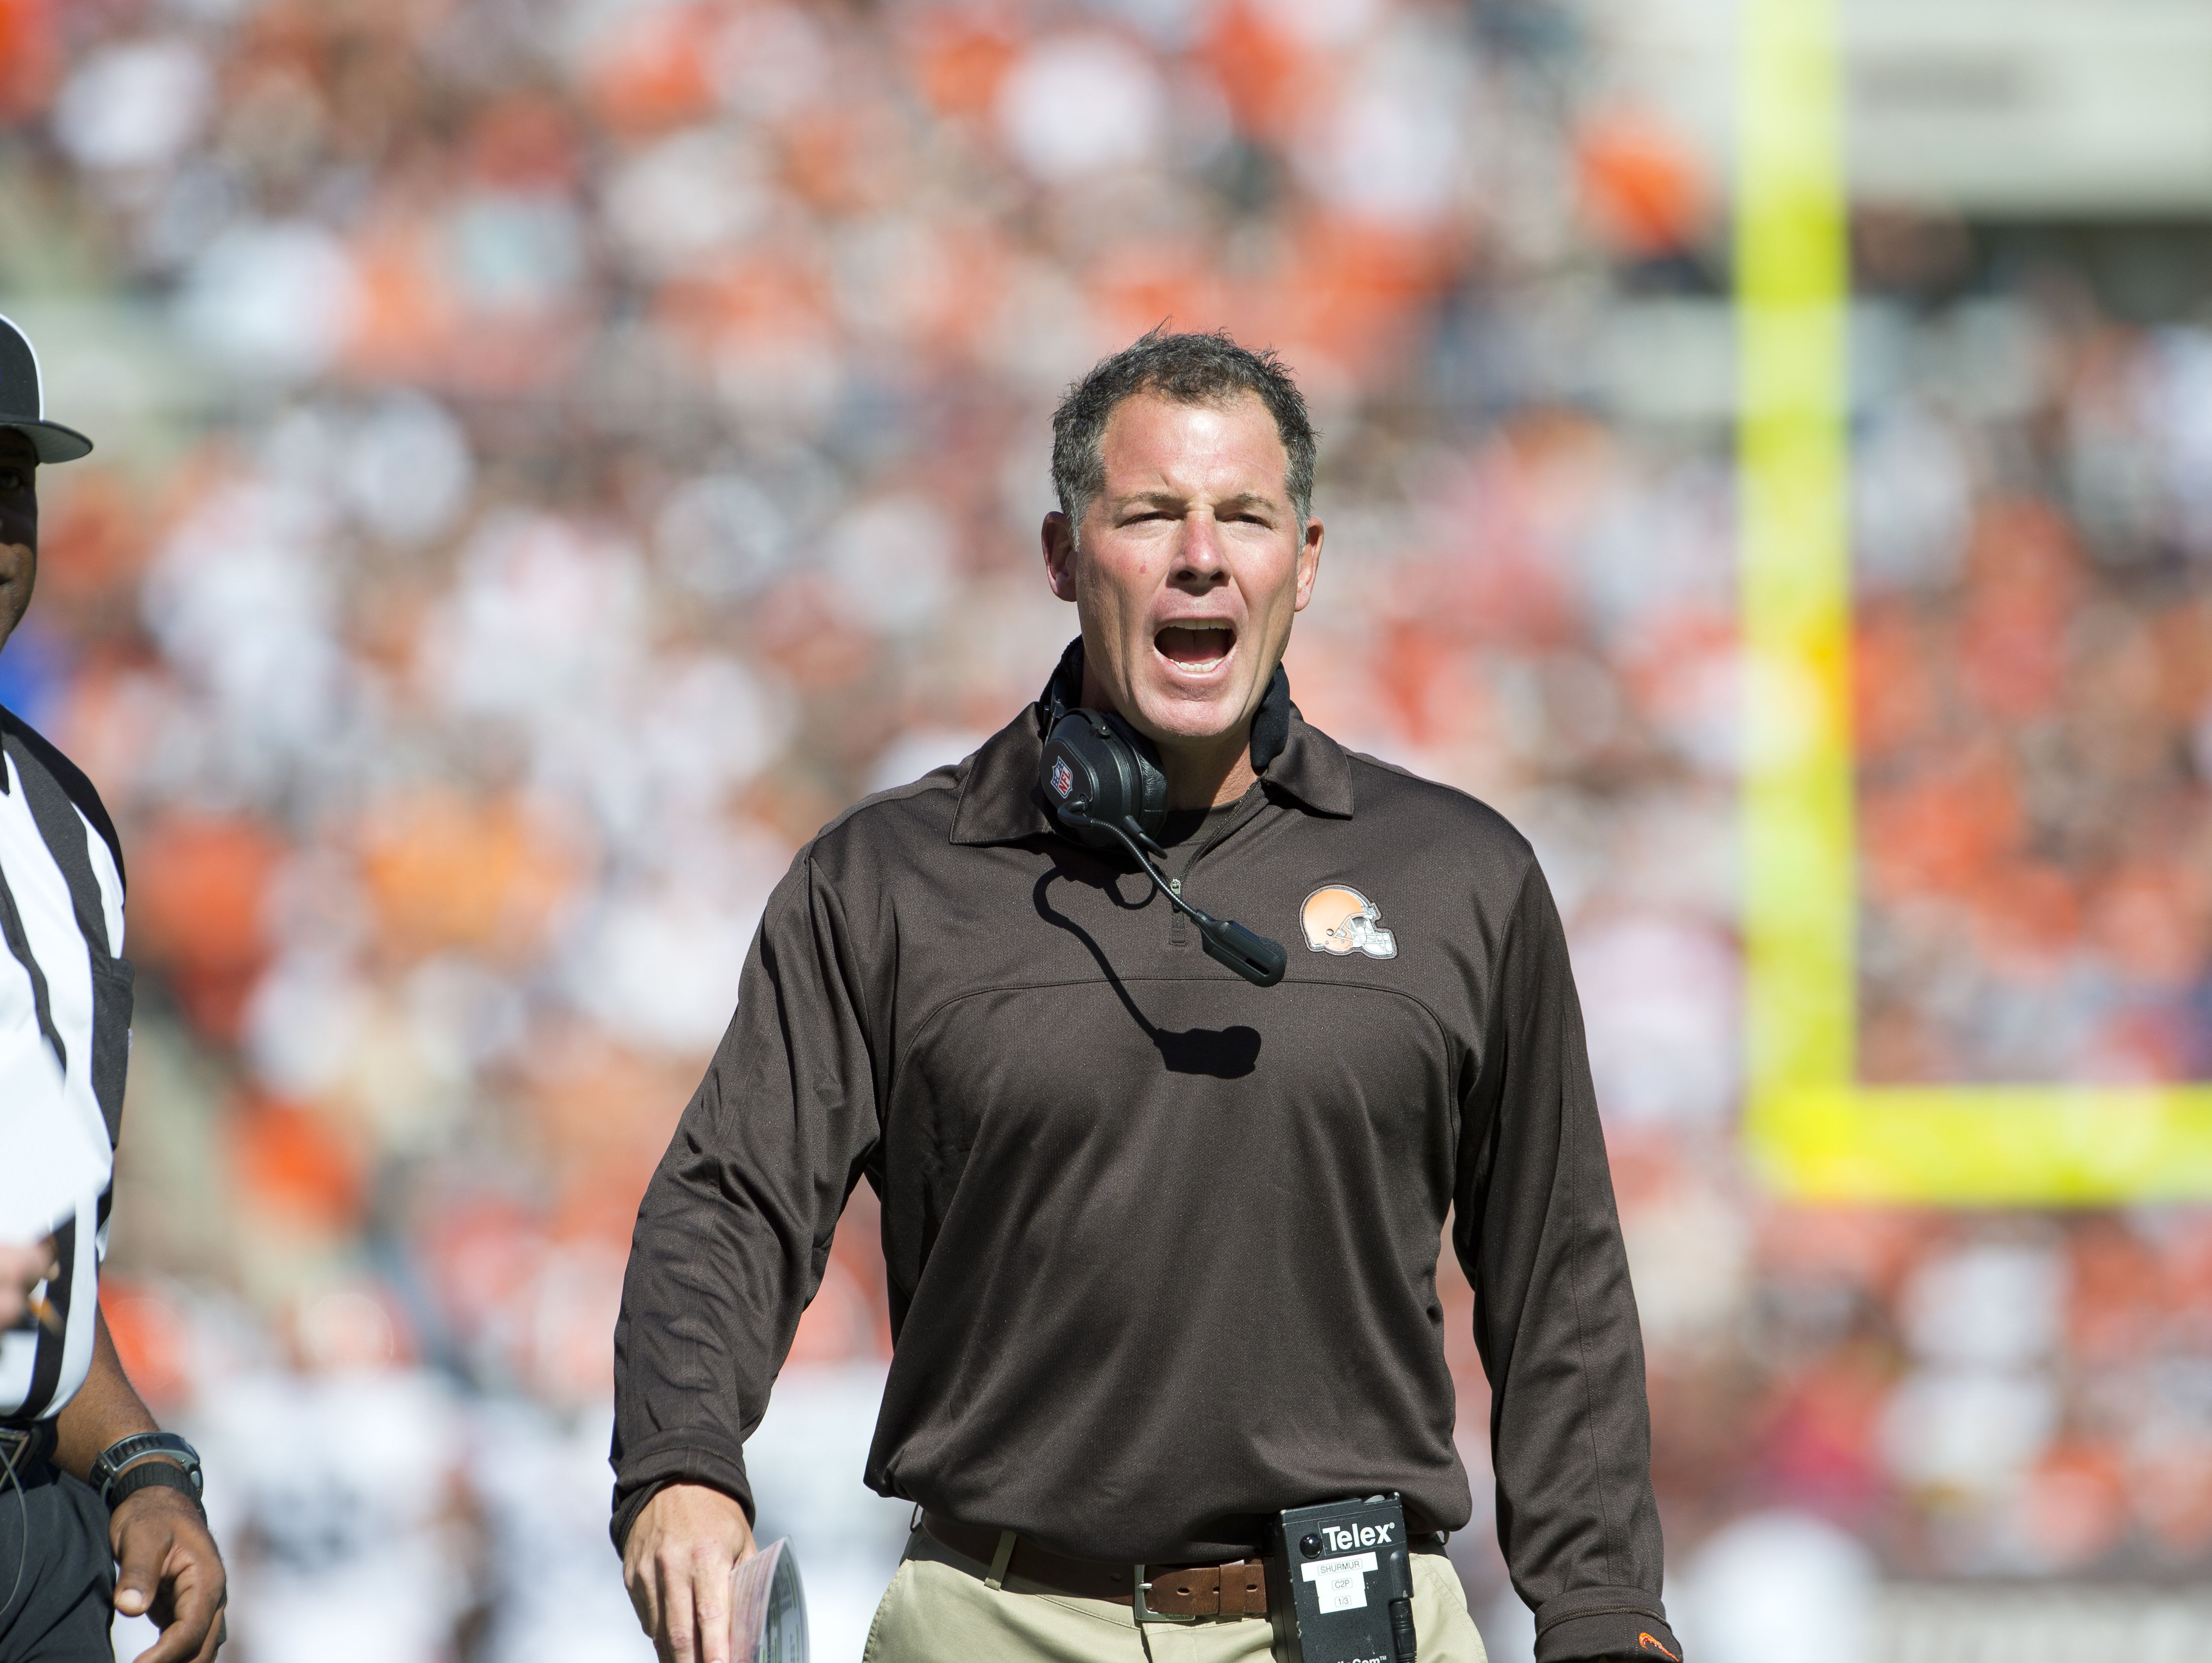 Pat Shurmur, pictured as the head coach of the Cleveland Browns in 2012.